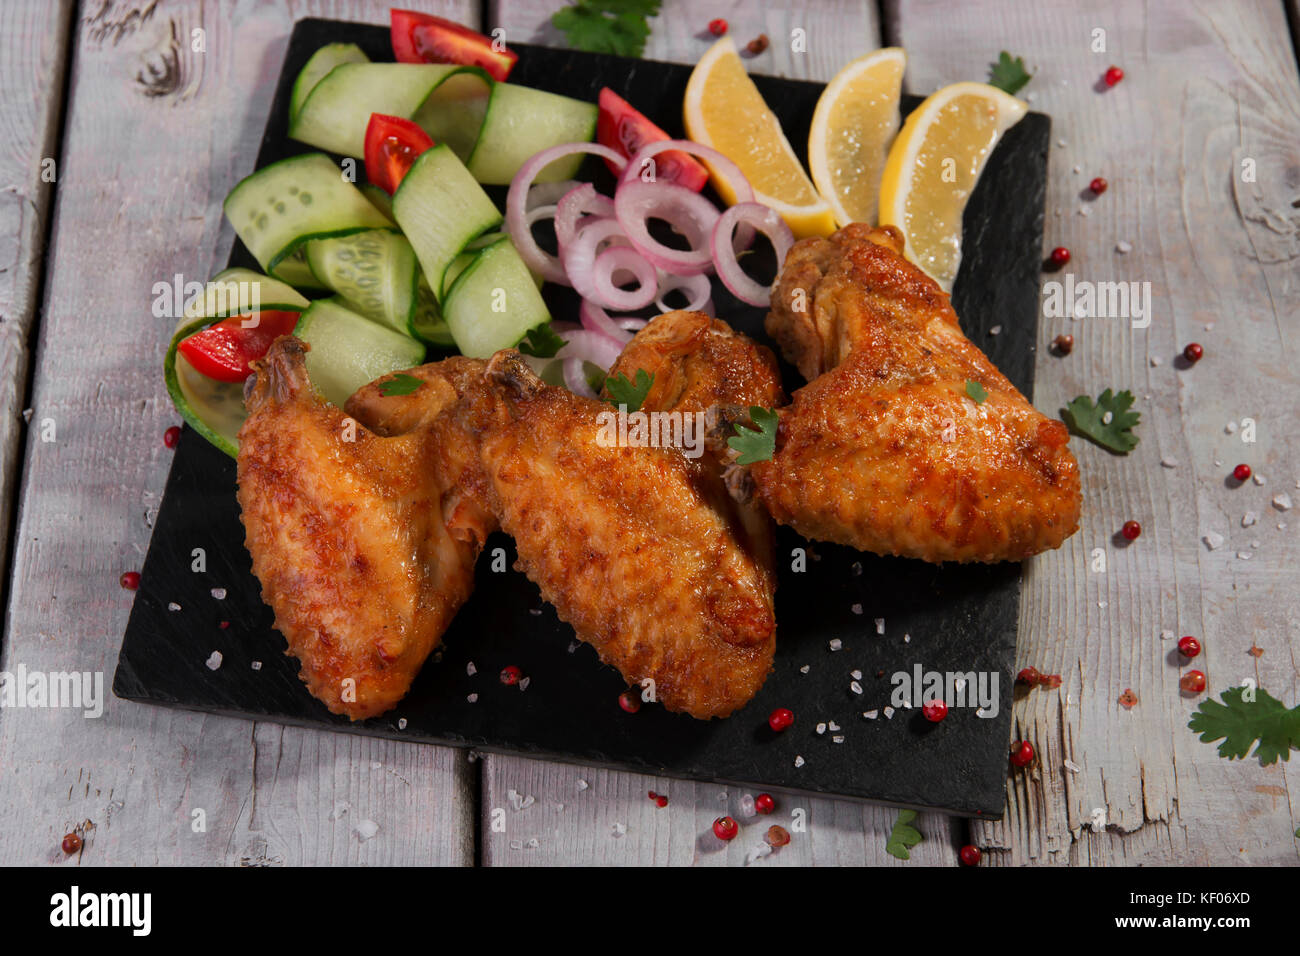 fried chicken wings with vegetables - Stock Image